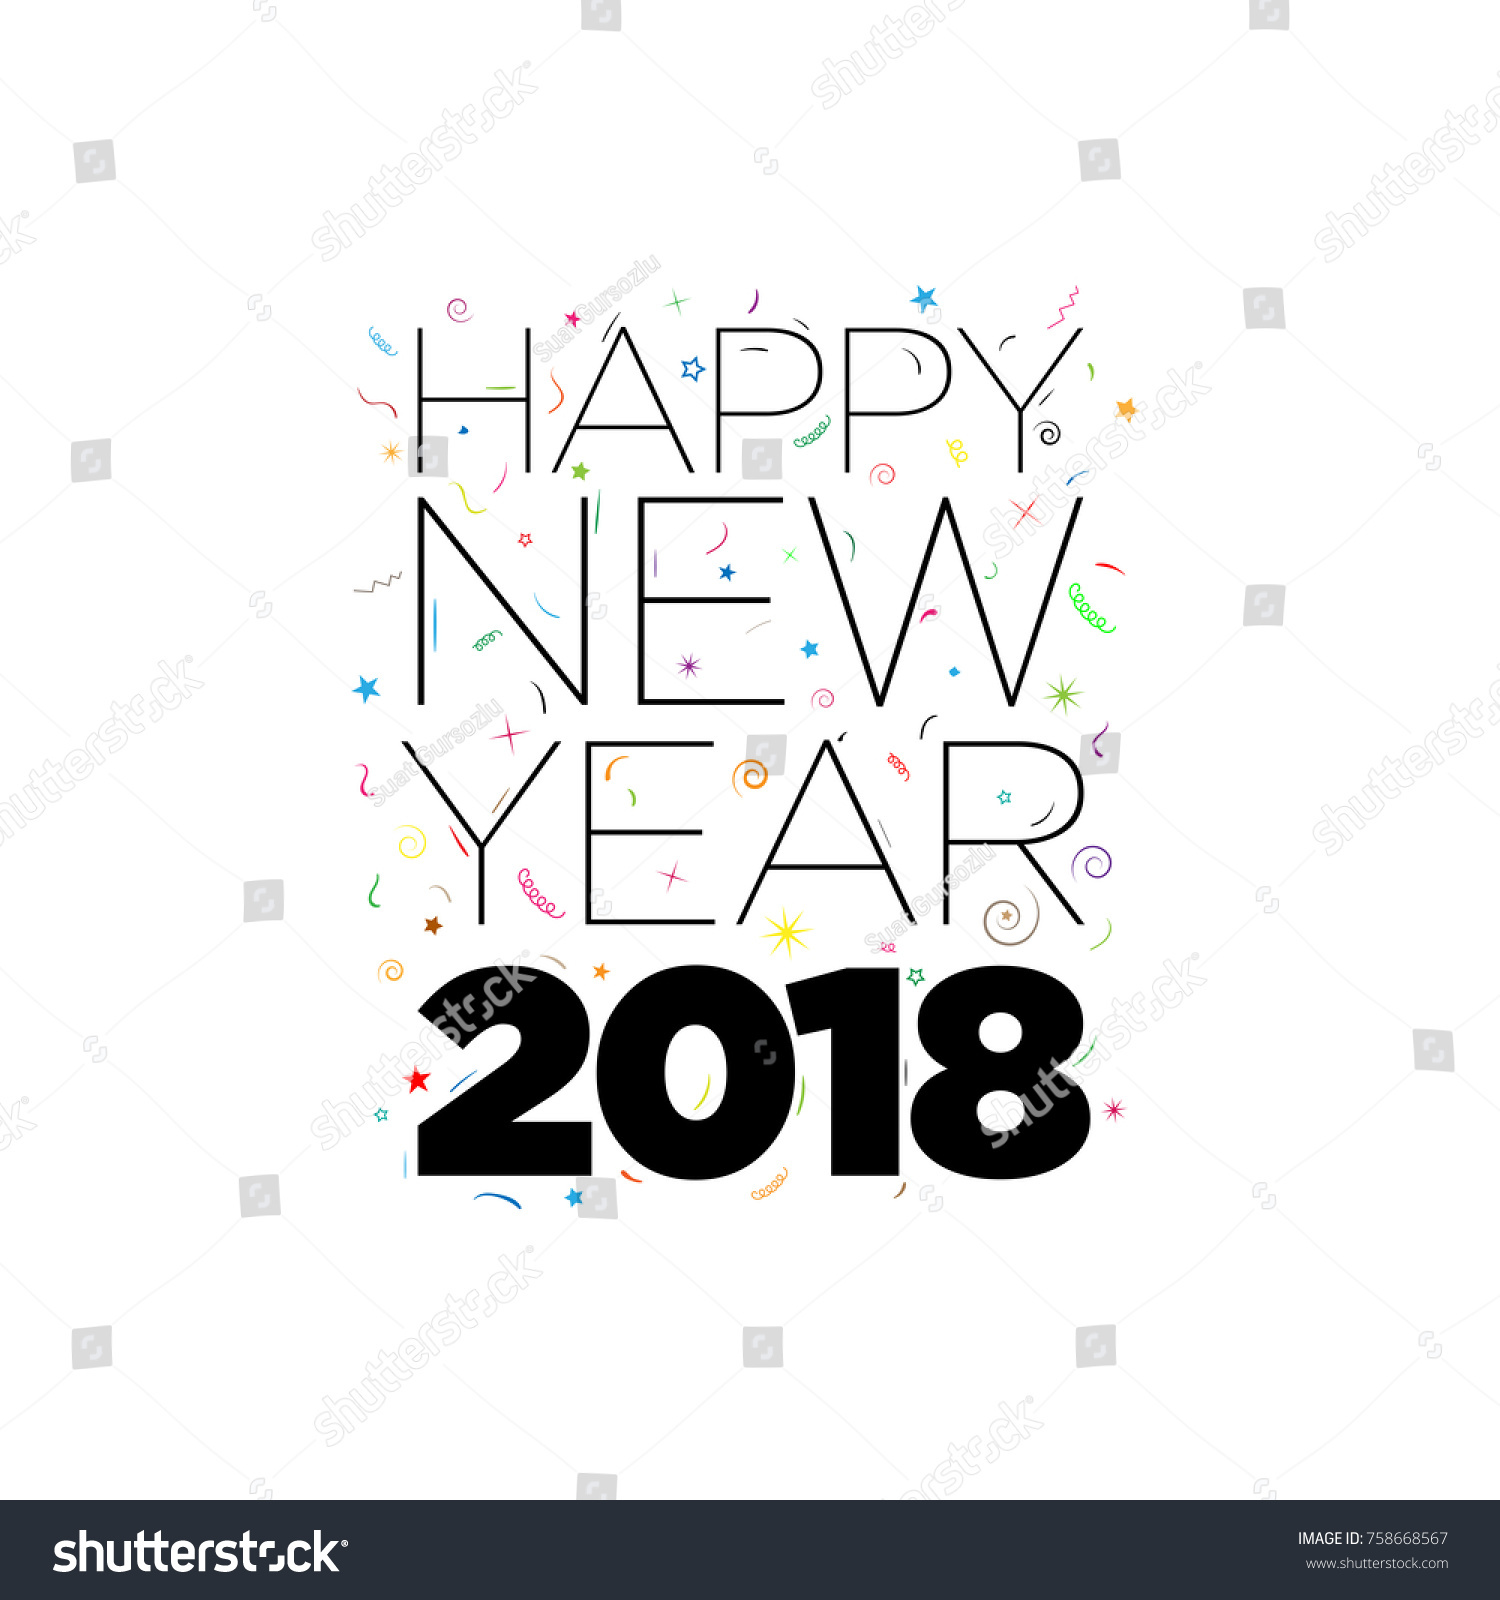 black happy new year 2018 text with confetti elements on white background vector typographic design